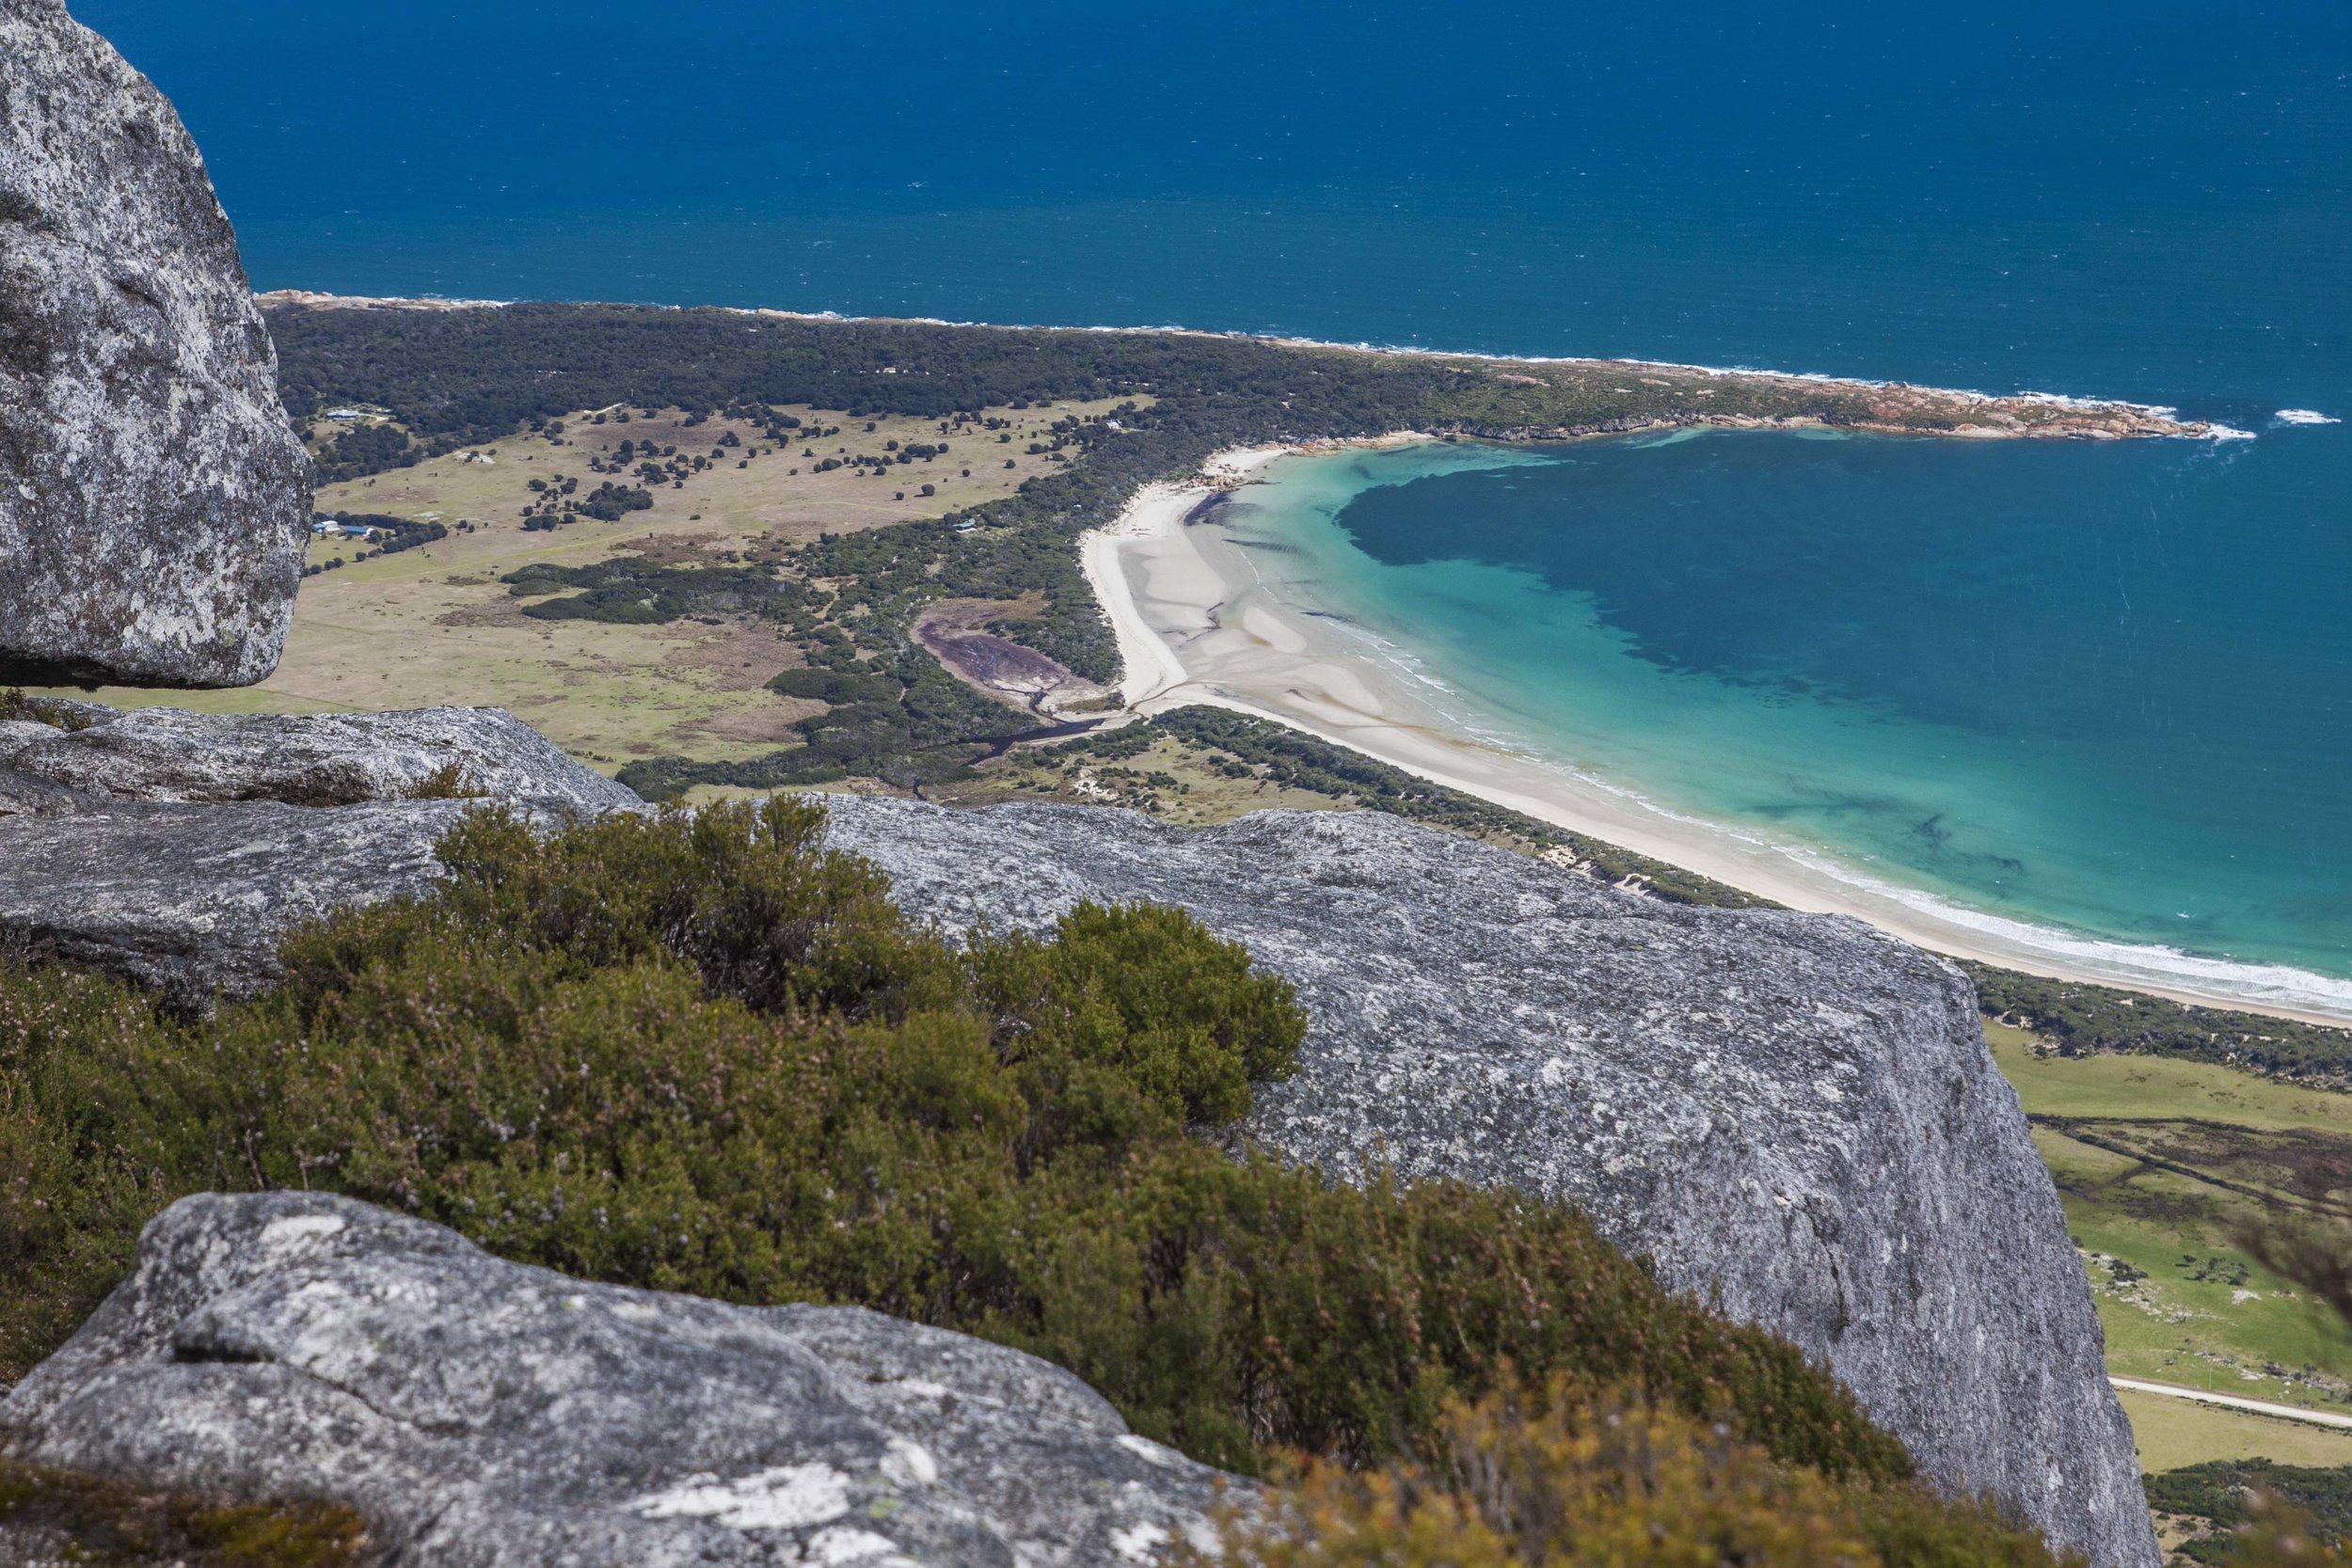 View of Mountain Seas (the most distant cleared area) and the coast from Strzelecki Peak. Trousers Point is hidden by the rock in the upper left.